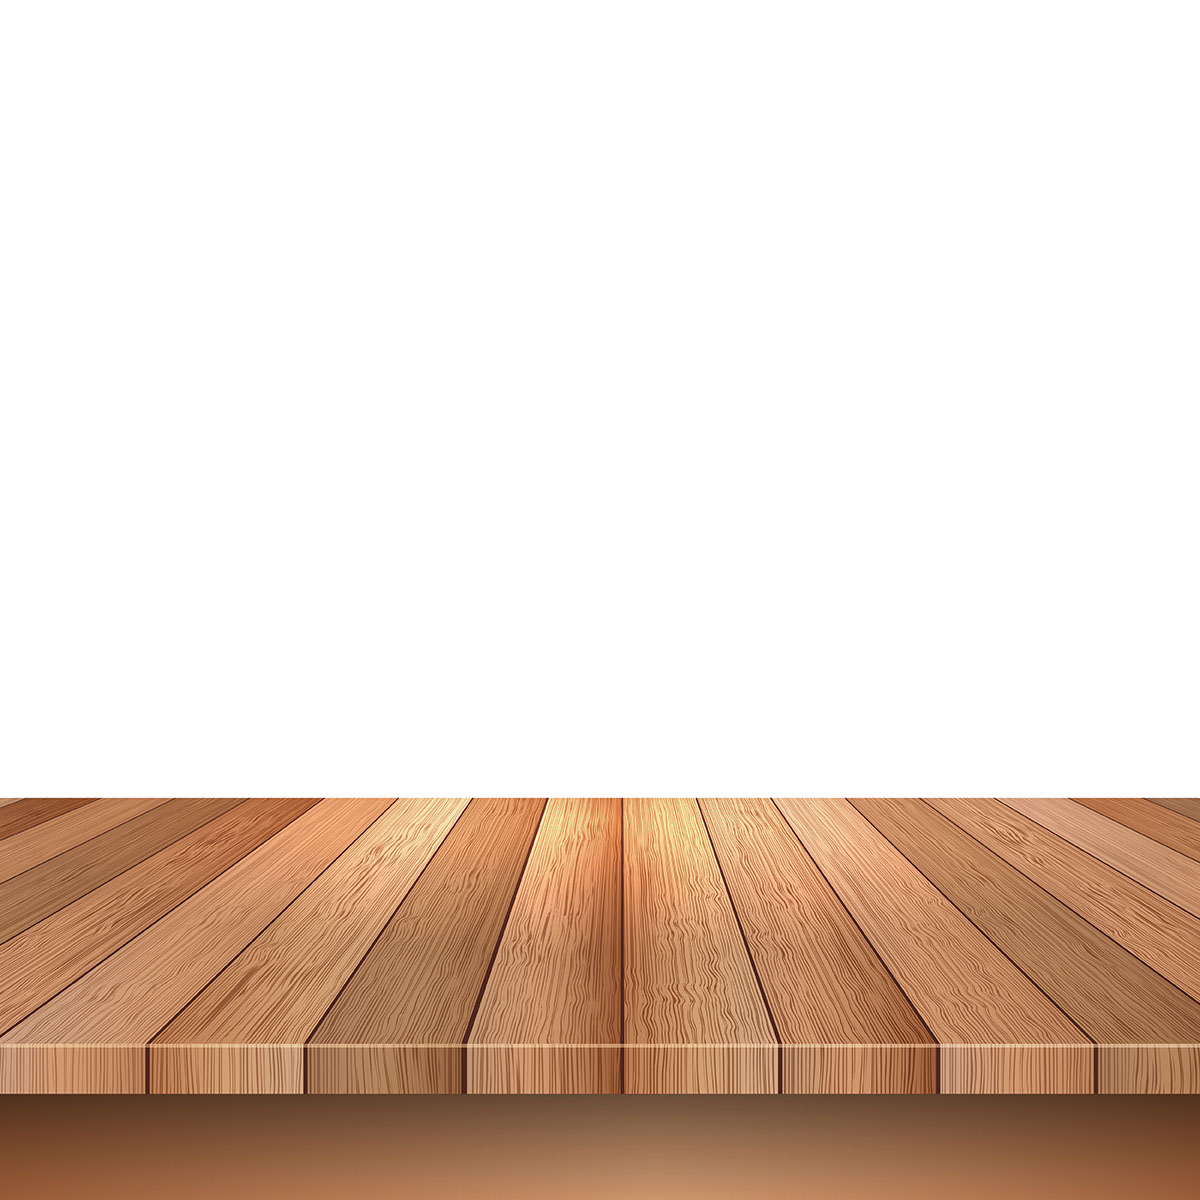 Deck Table Free Vector Art 141 Free Downloads